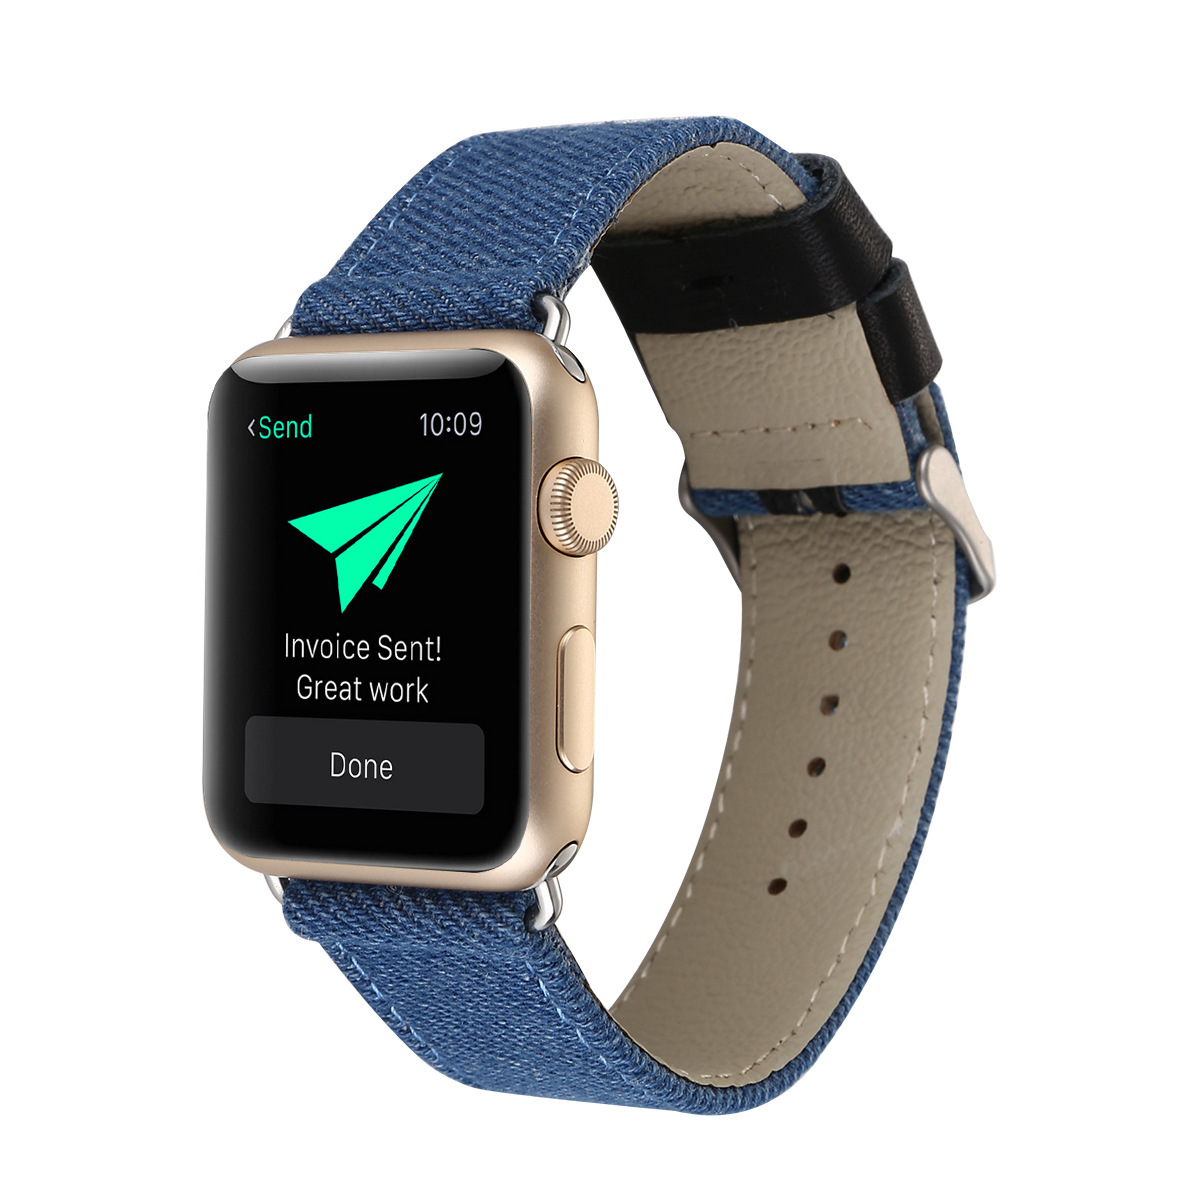 Suitable For Apple Watch IWatch Cowboy Linen Finish Watch Strap APPLE Watch1234 Leather Watch Strap